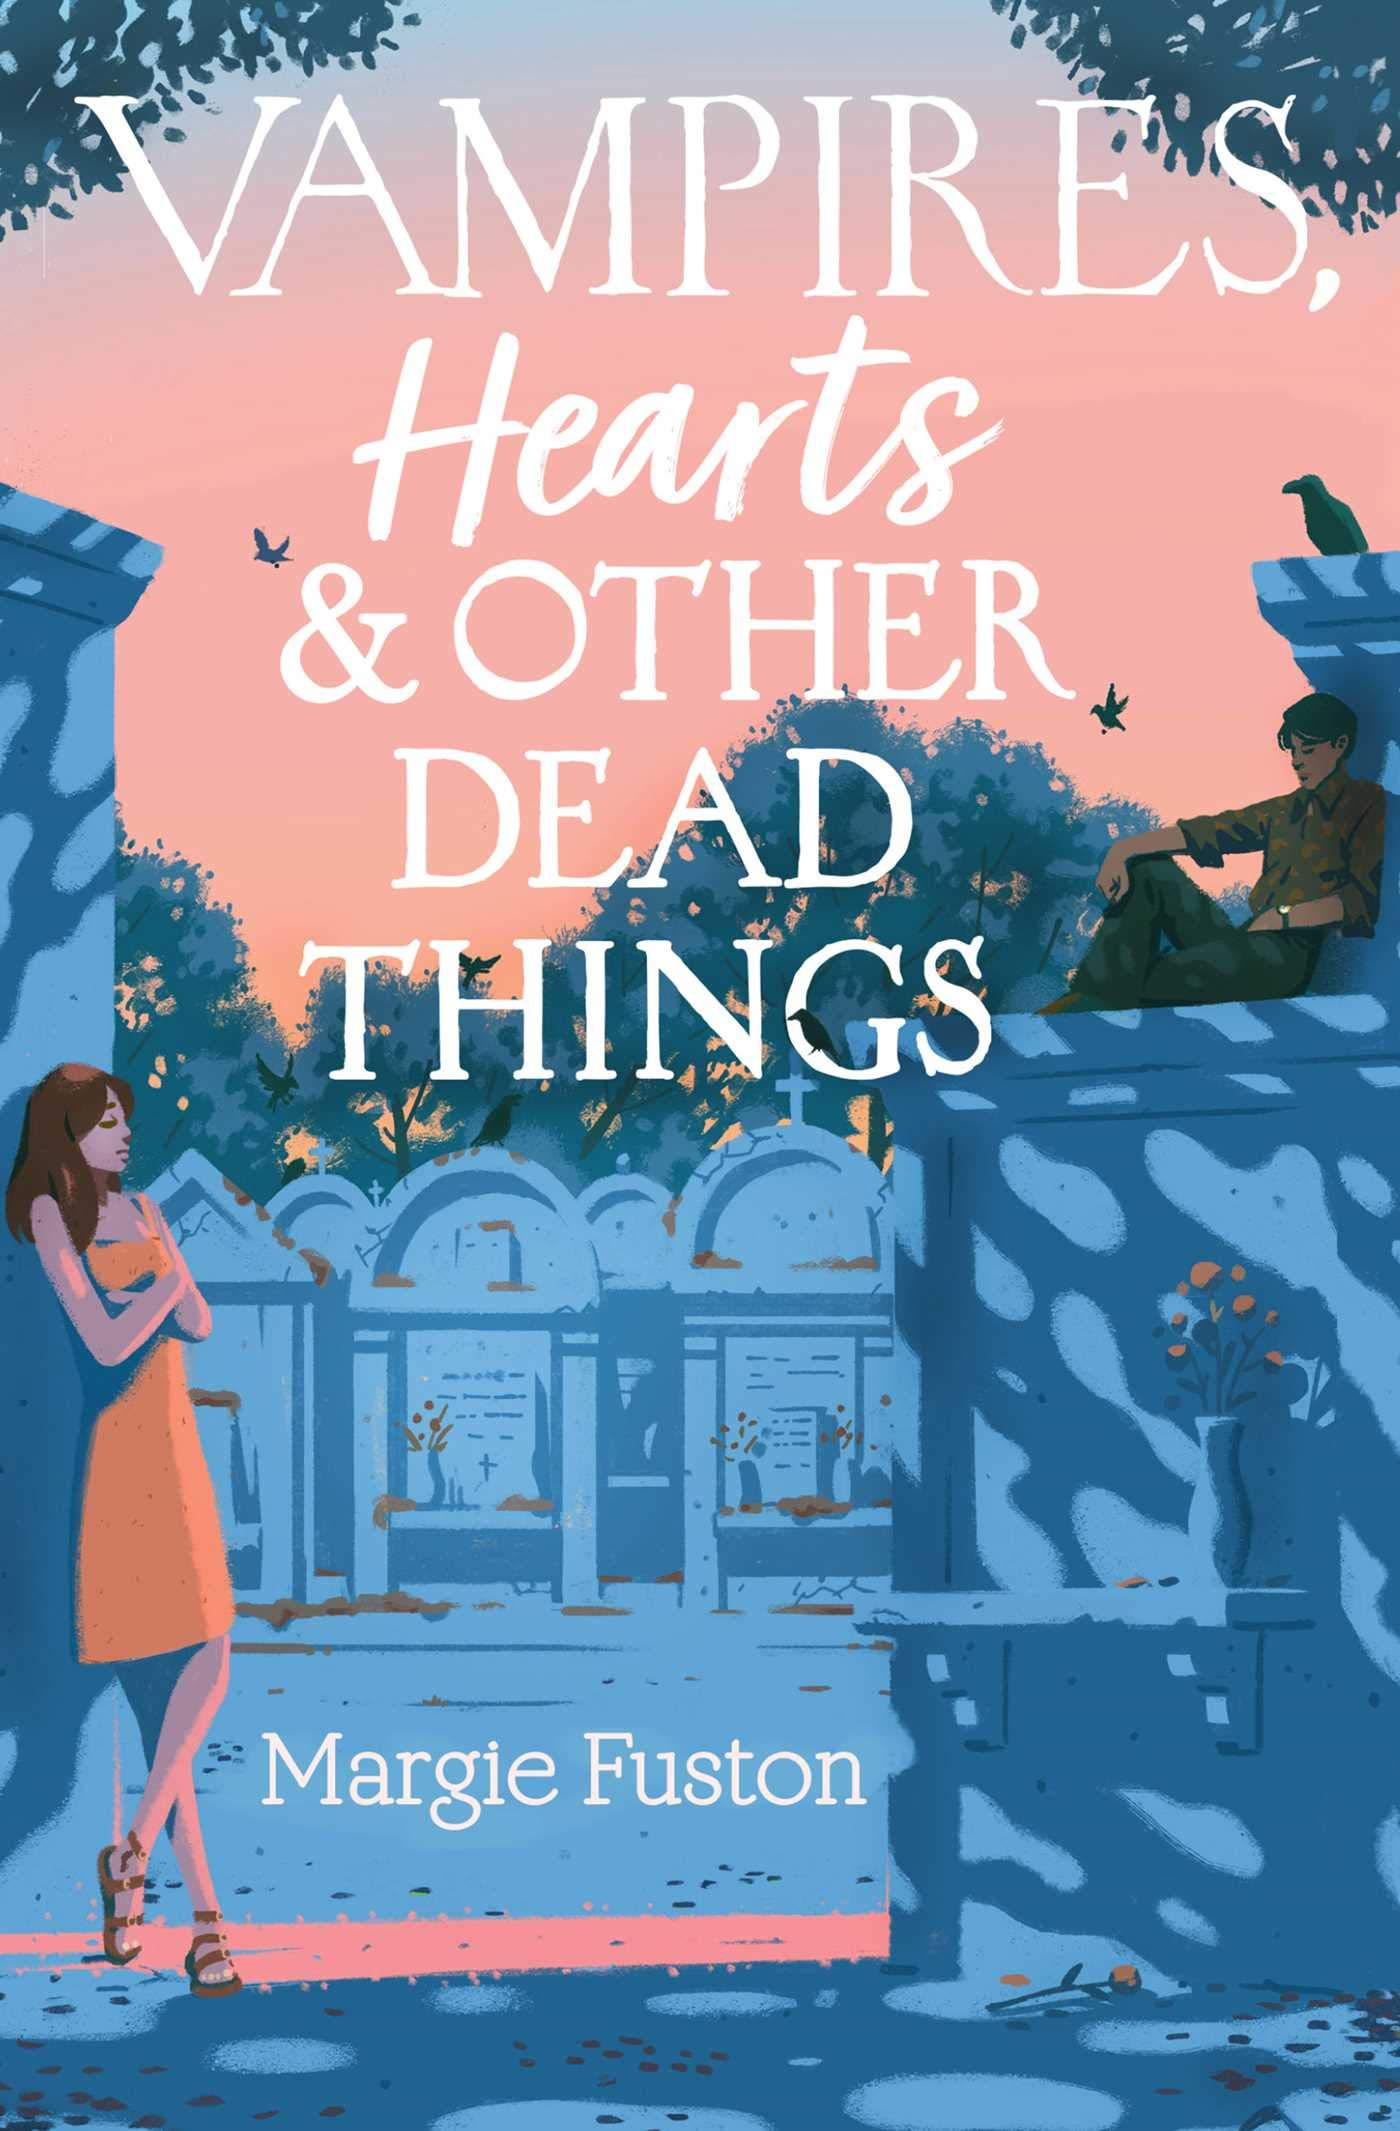 Amazon.com: Vampires, Hearts & Other Dead Things: 9781534474574: Fuston,  Margie: Books